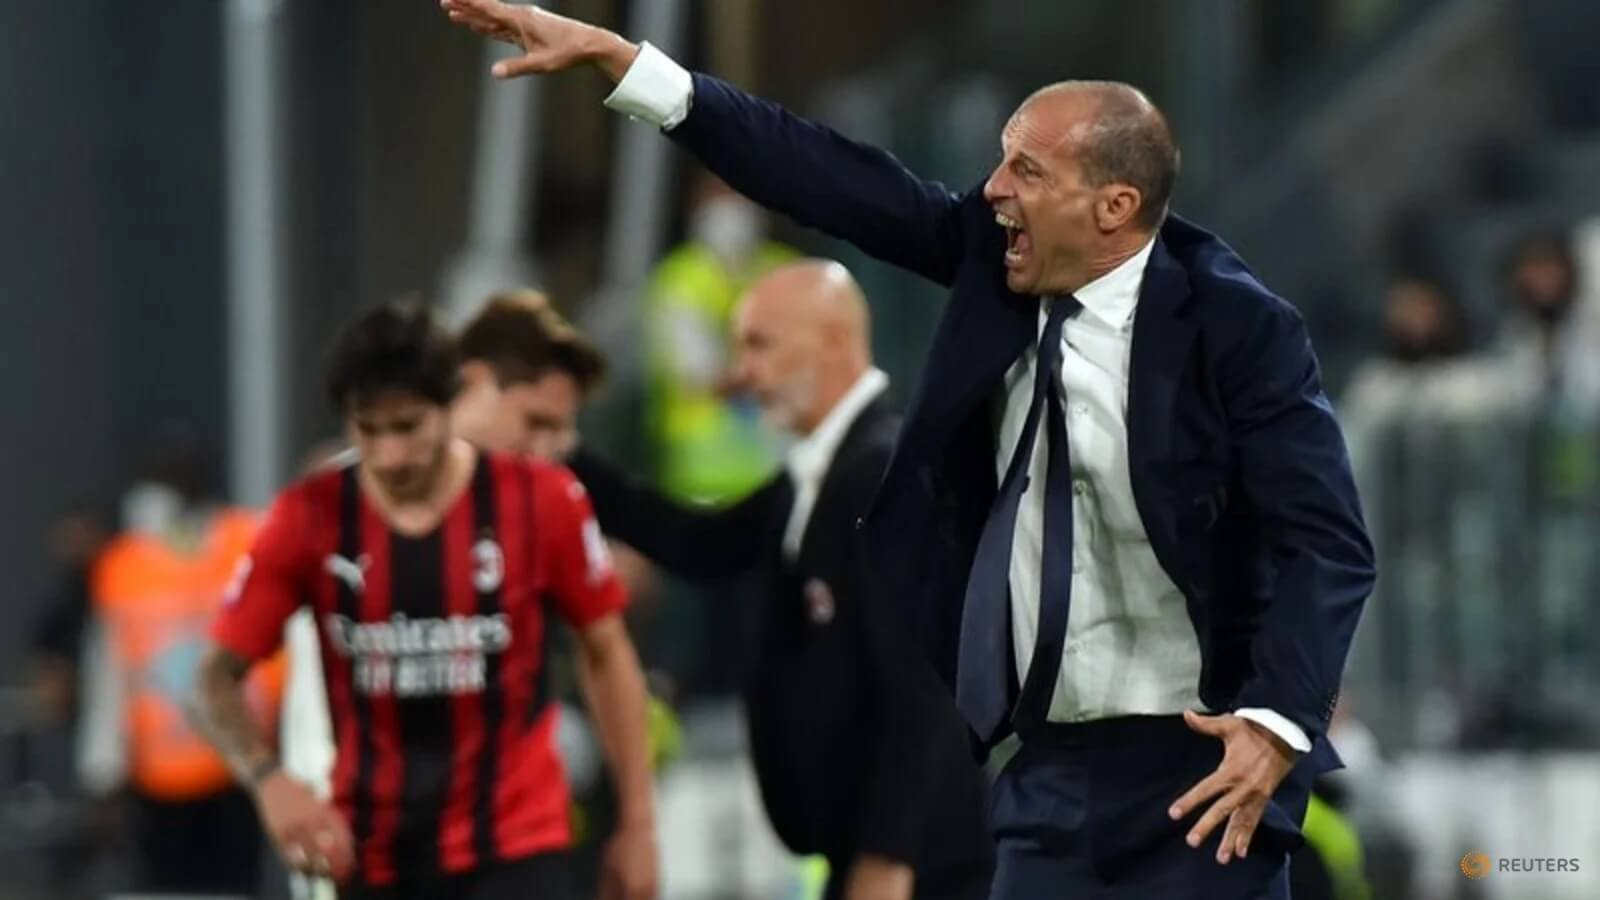 Juve's Allegri stormed off the field against Milan